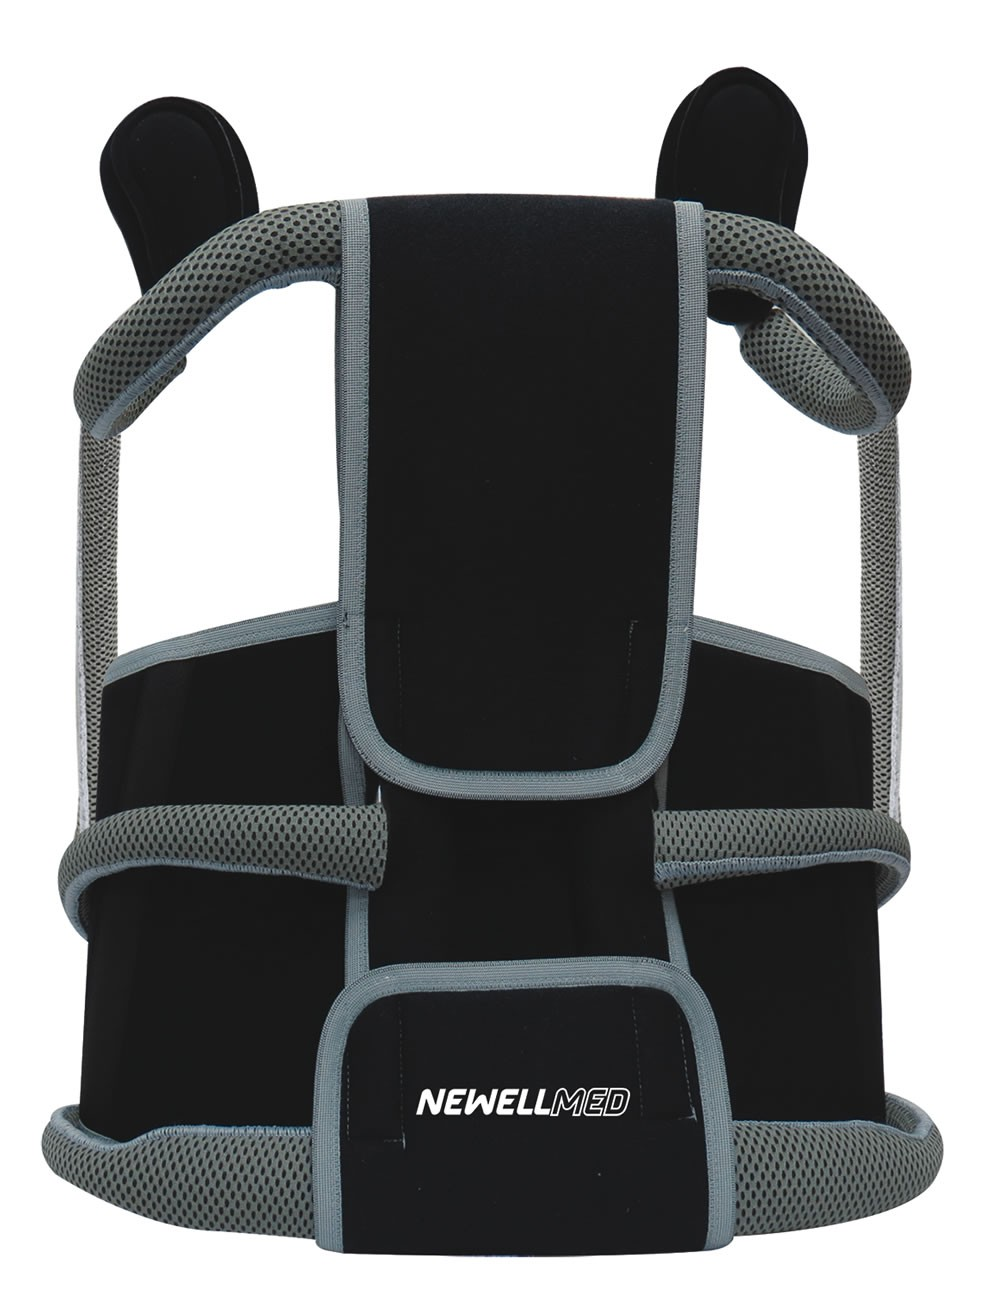 TK391 - Modular cross with underarm release, lateral stabilizing rods and lumbar belt